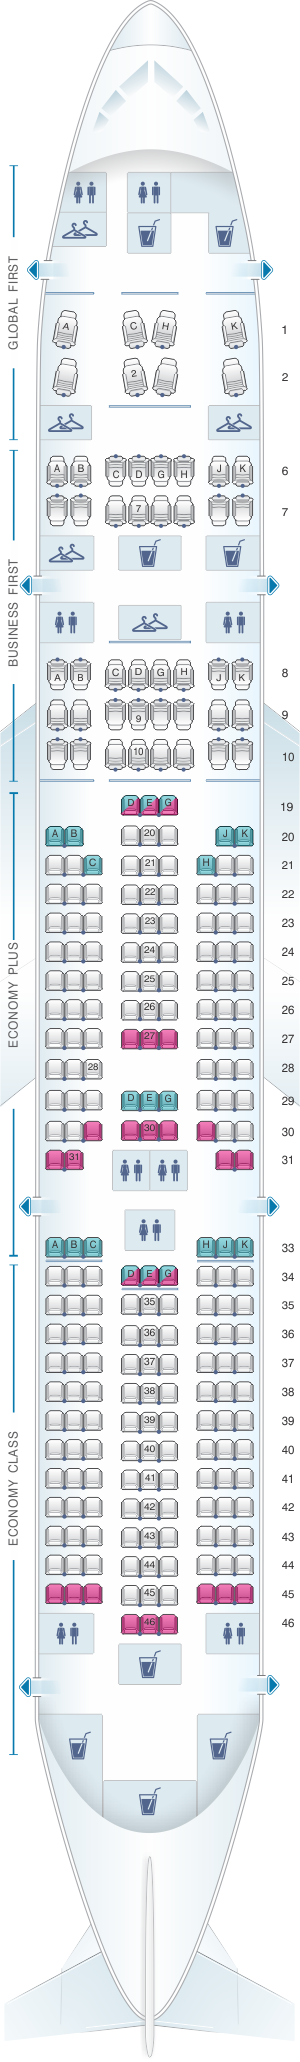 Seat map for United Airlines Boeing B777 200 (777) - version 1